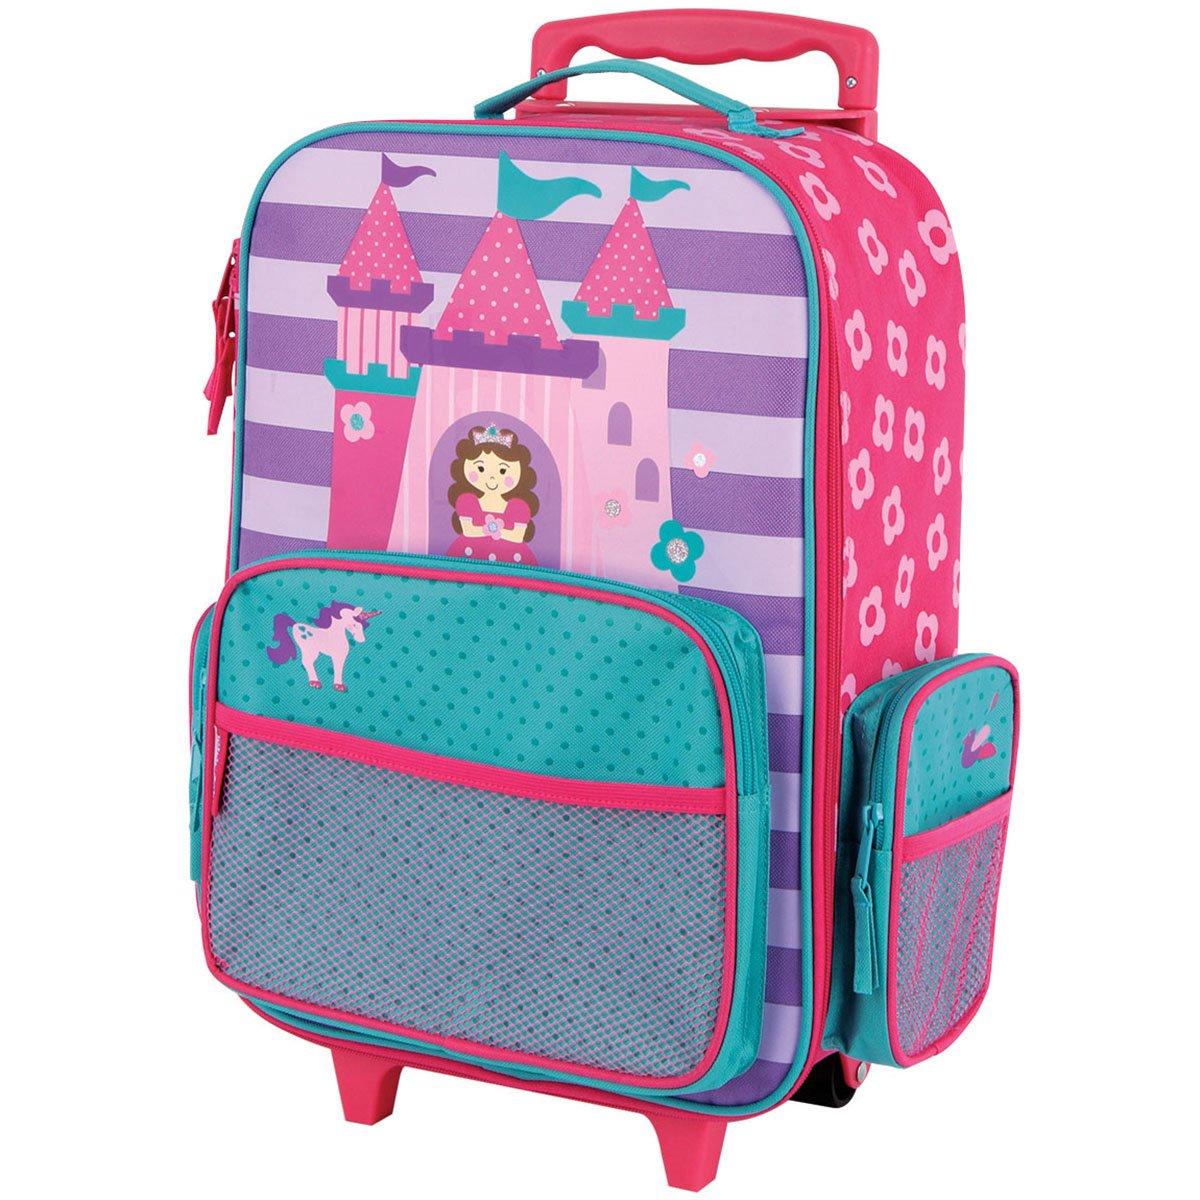 Stephen Joseph Girls Classic Rolling Luggage Backpack Princess One Size